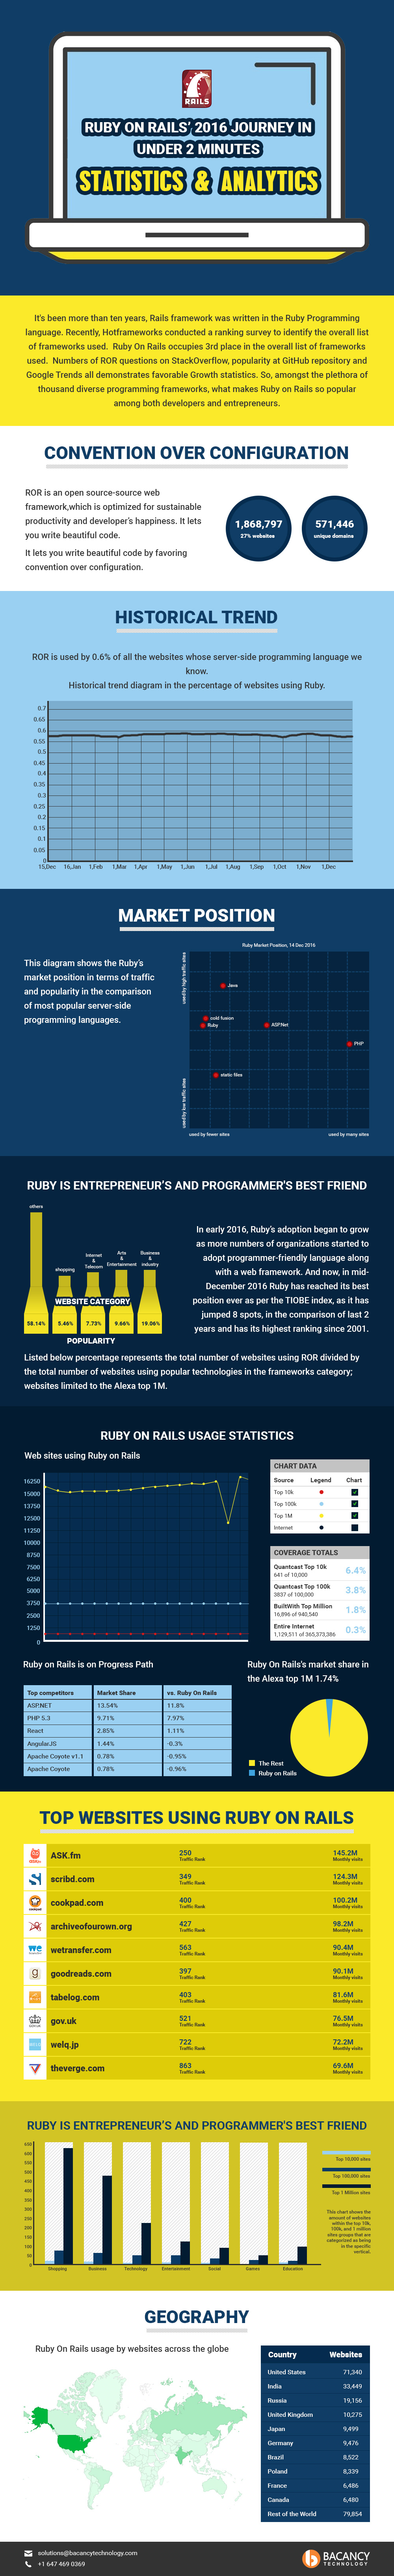 evolution-of-ruby-on-rails-infographic